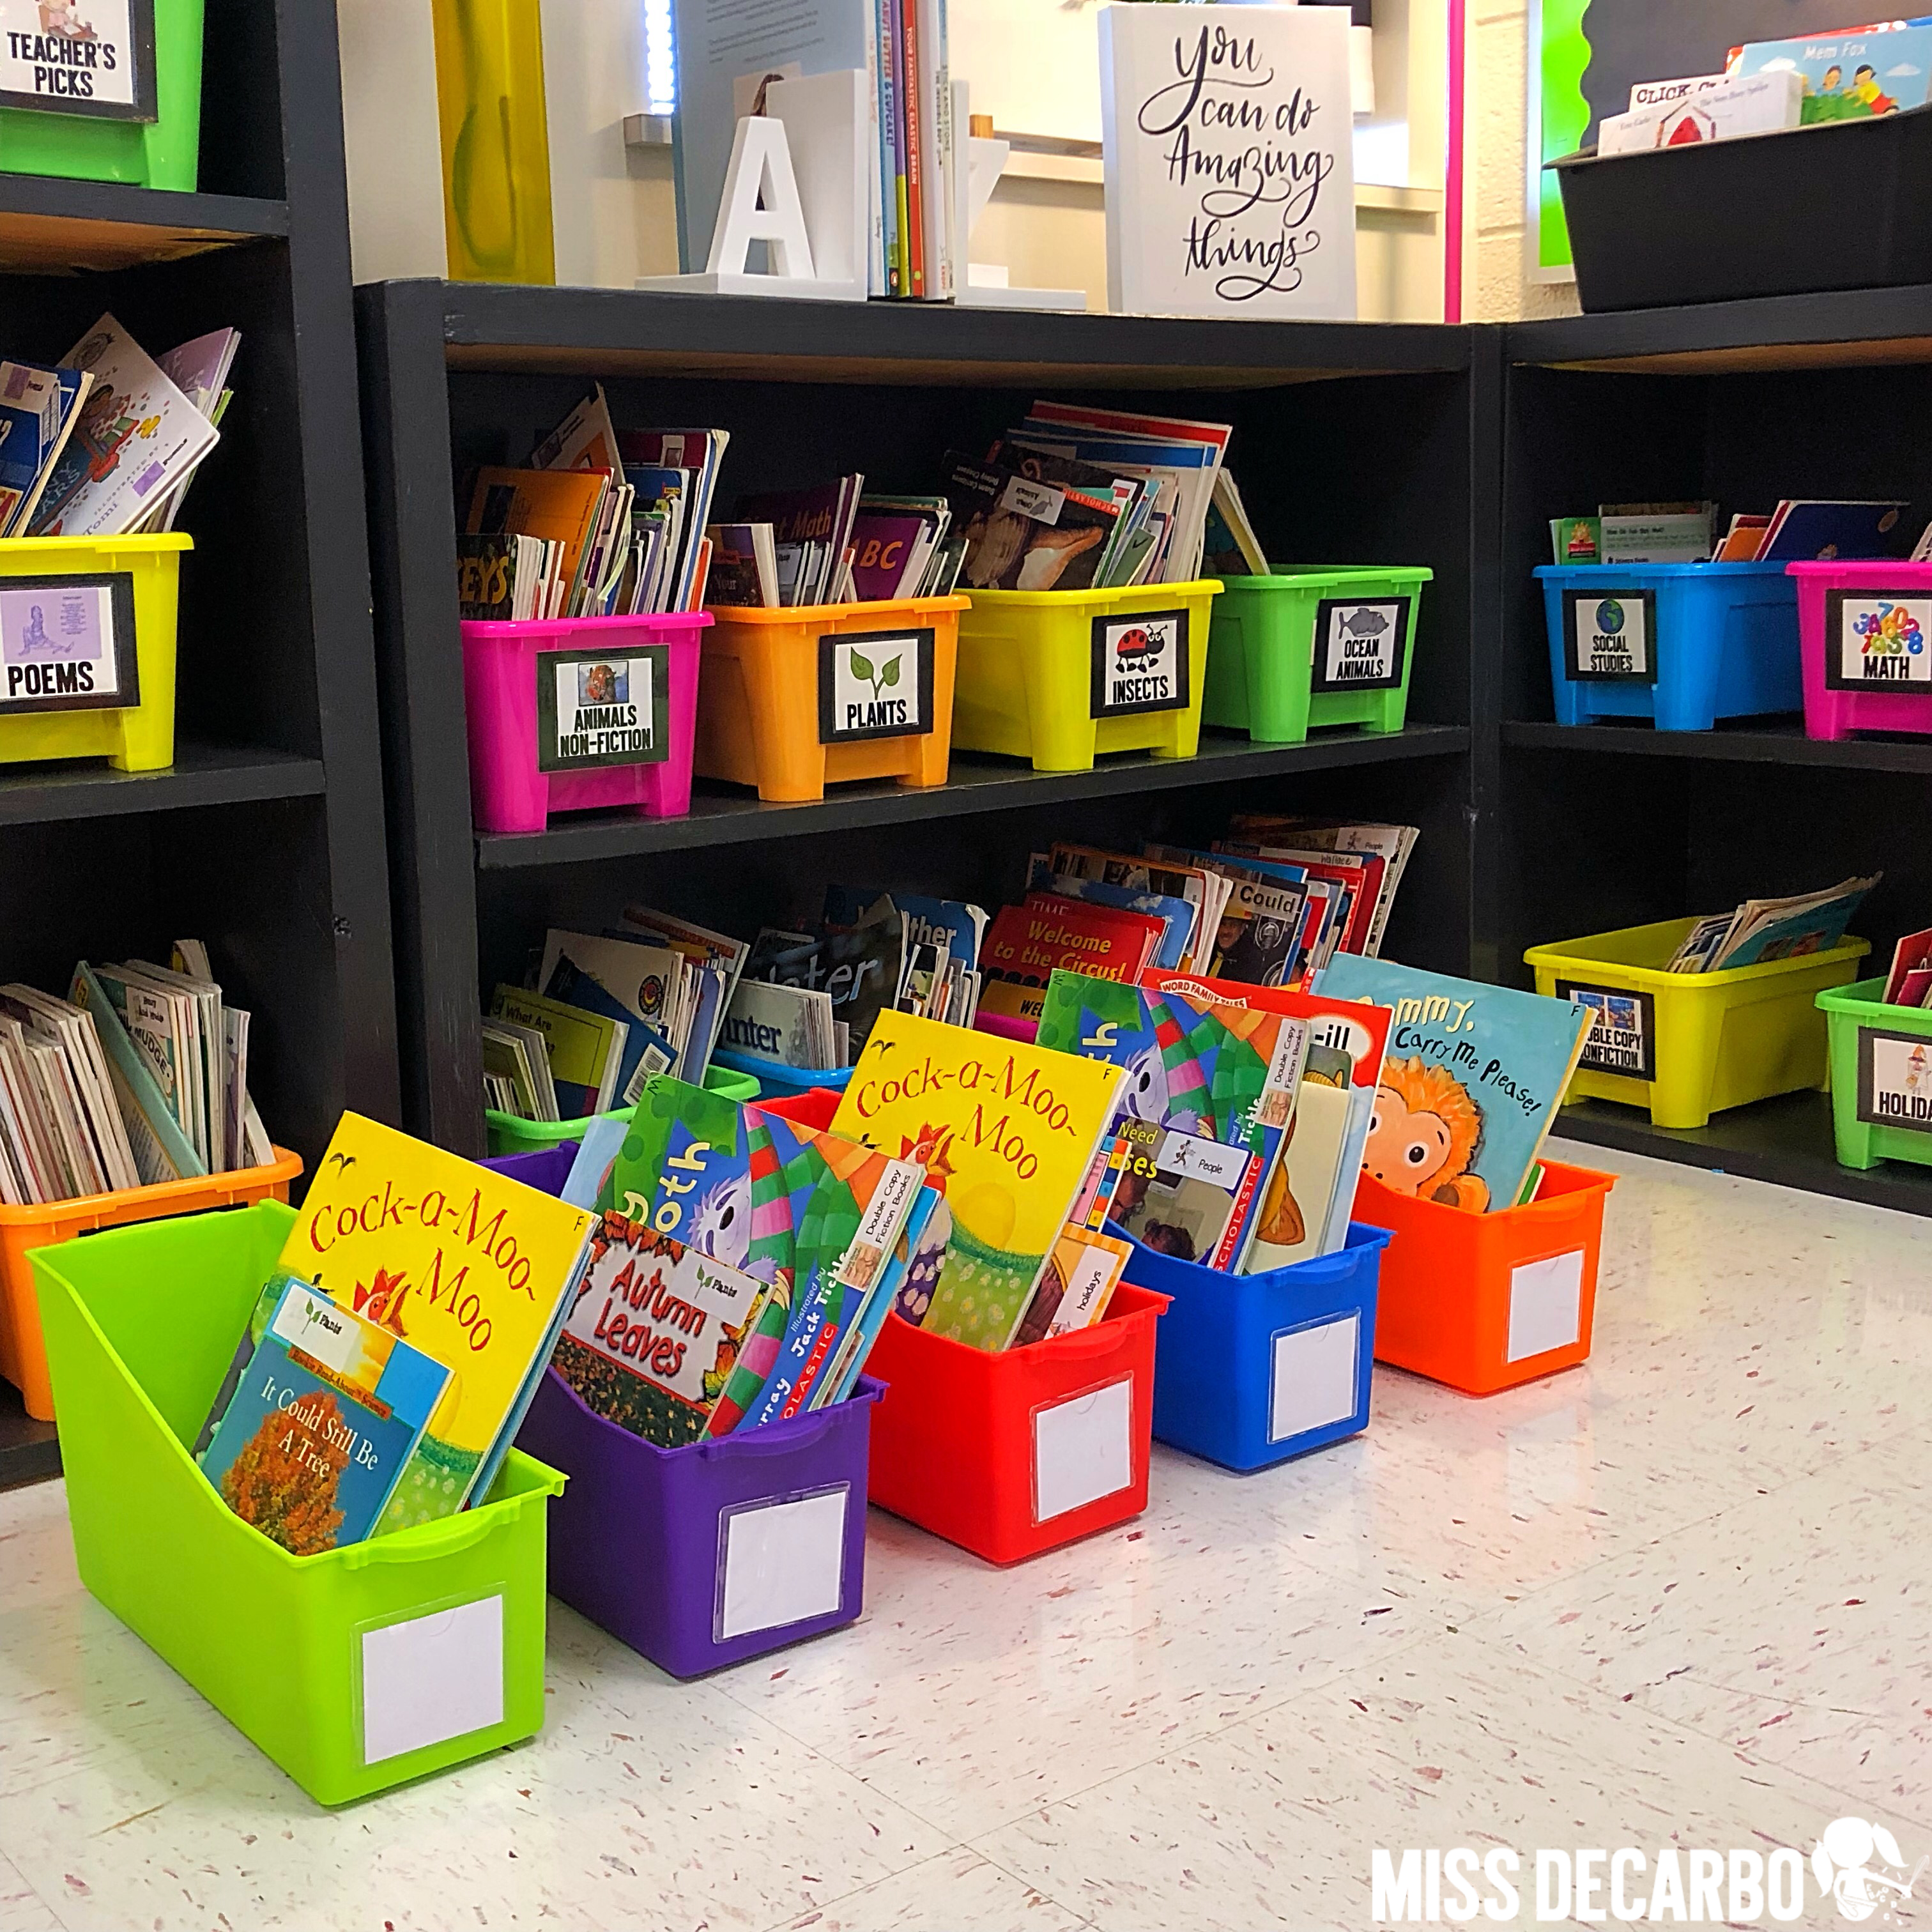 Use your classroom library to explore and teach fiction and nonfiction text to your students! Place fiction and nonfiction books into book bins and have the students explore the books' features and characteristics in groups!